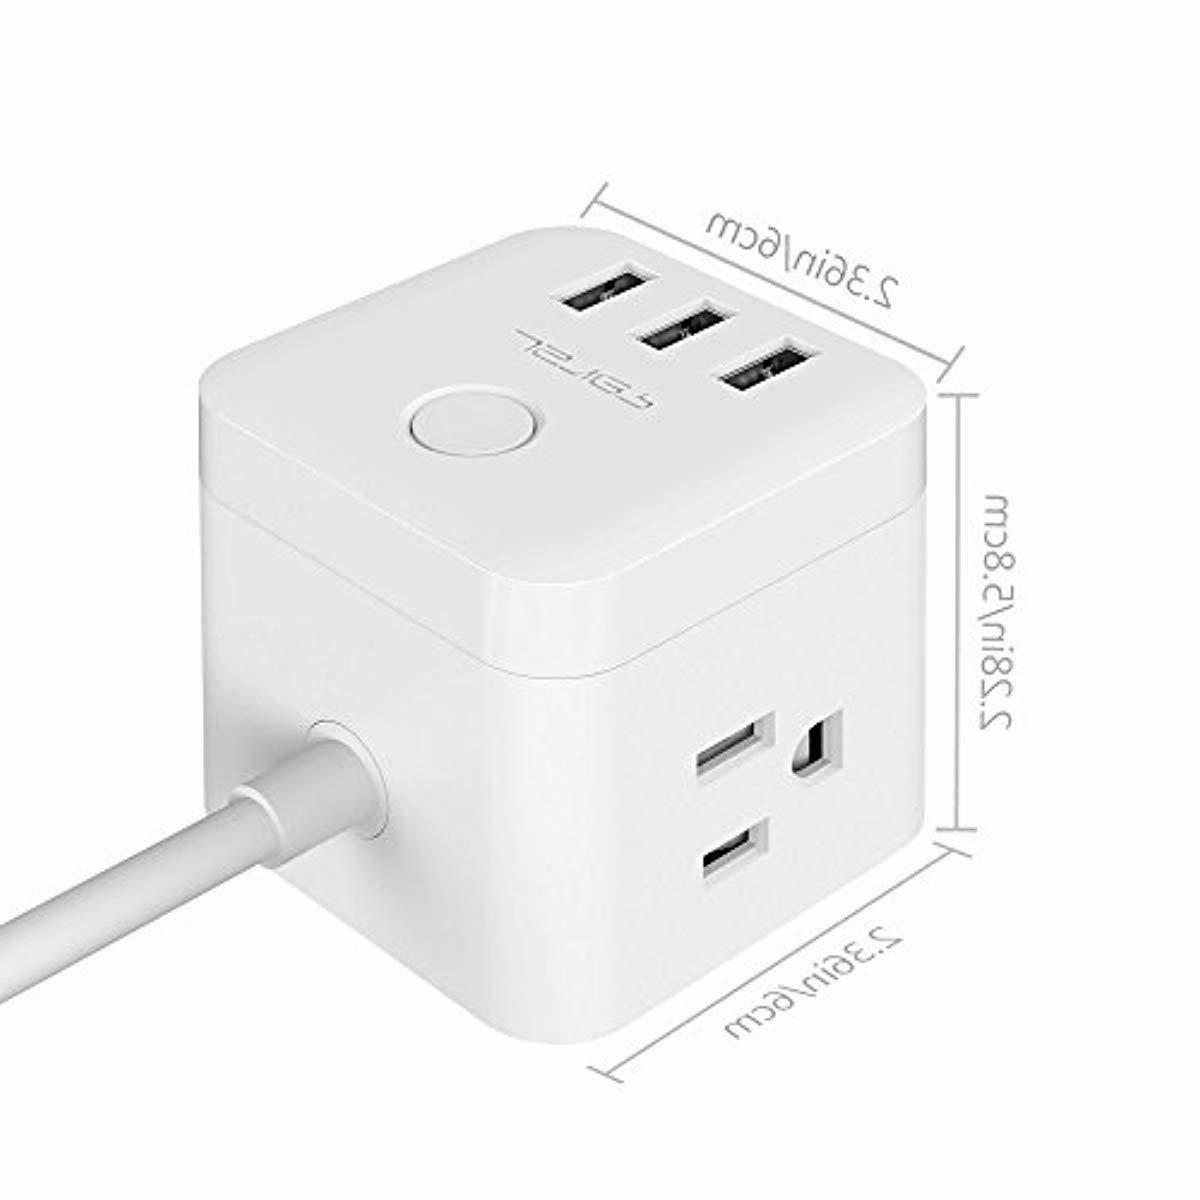 3 Power Compact With Smart Charging 4.92ft Cable